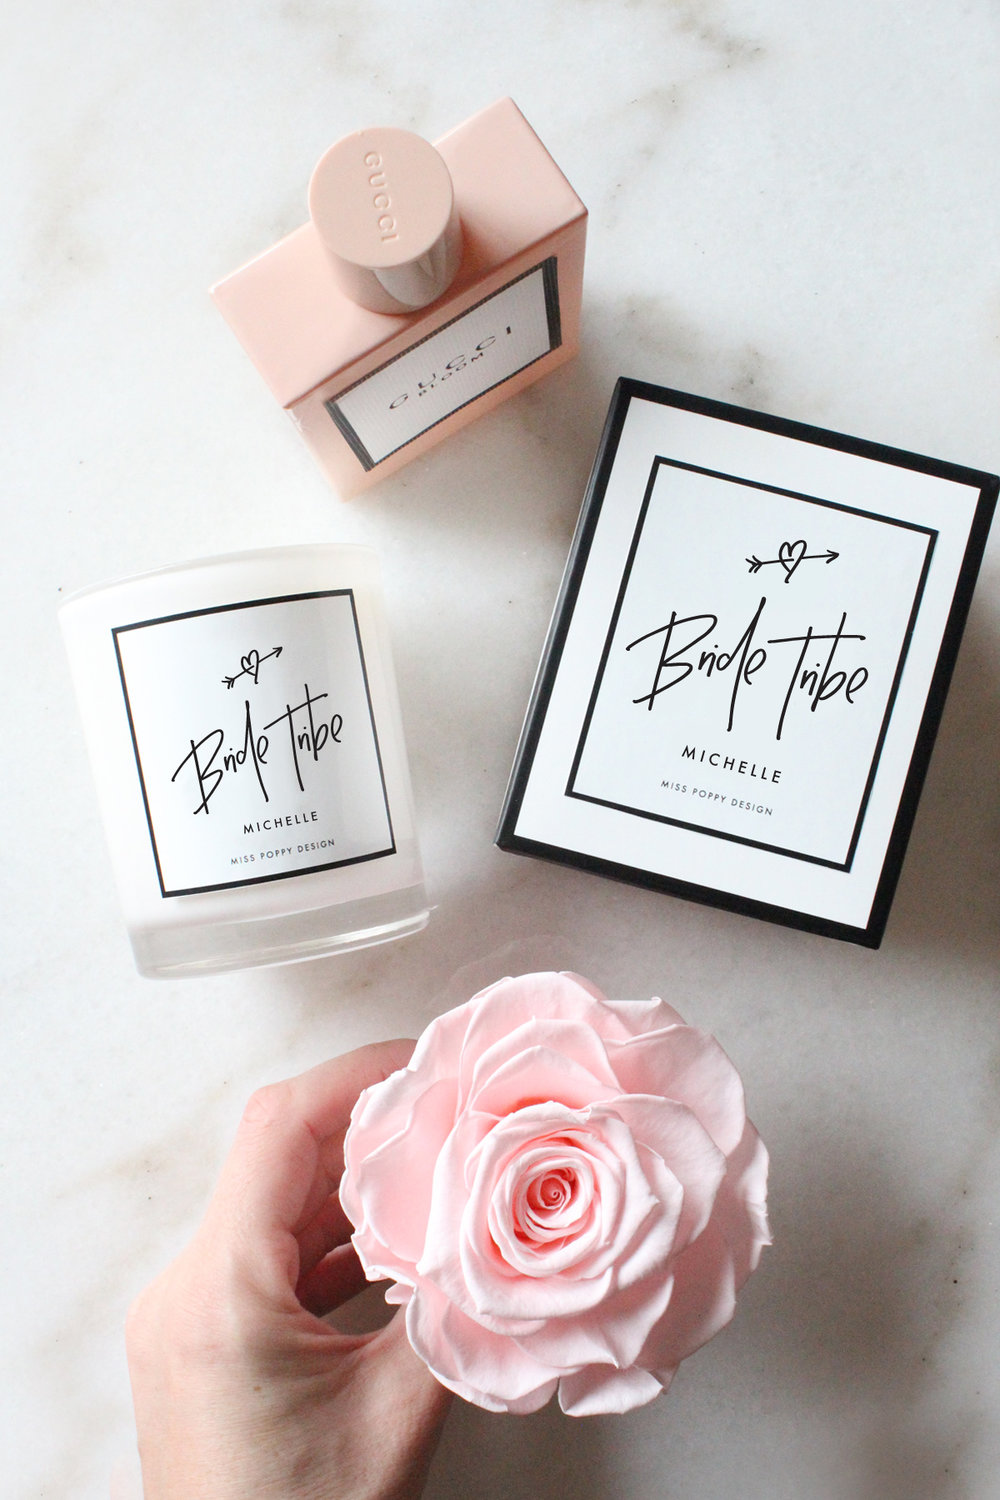 Personalised Pure Soy Candles - We offer a range of beautifully designed and smelling candles which can be personalised for your bridal party, wedding guests and even yourself.